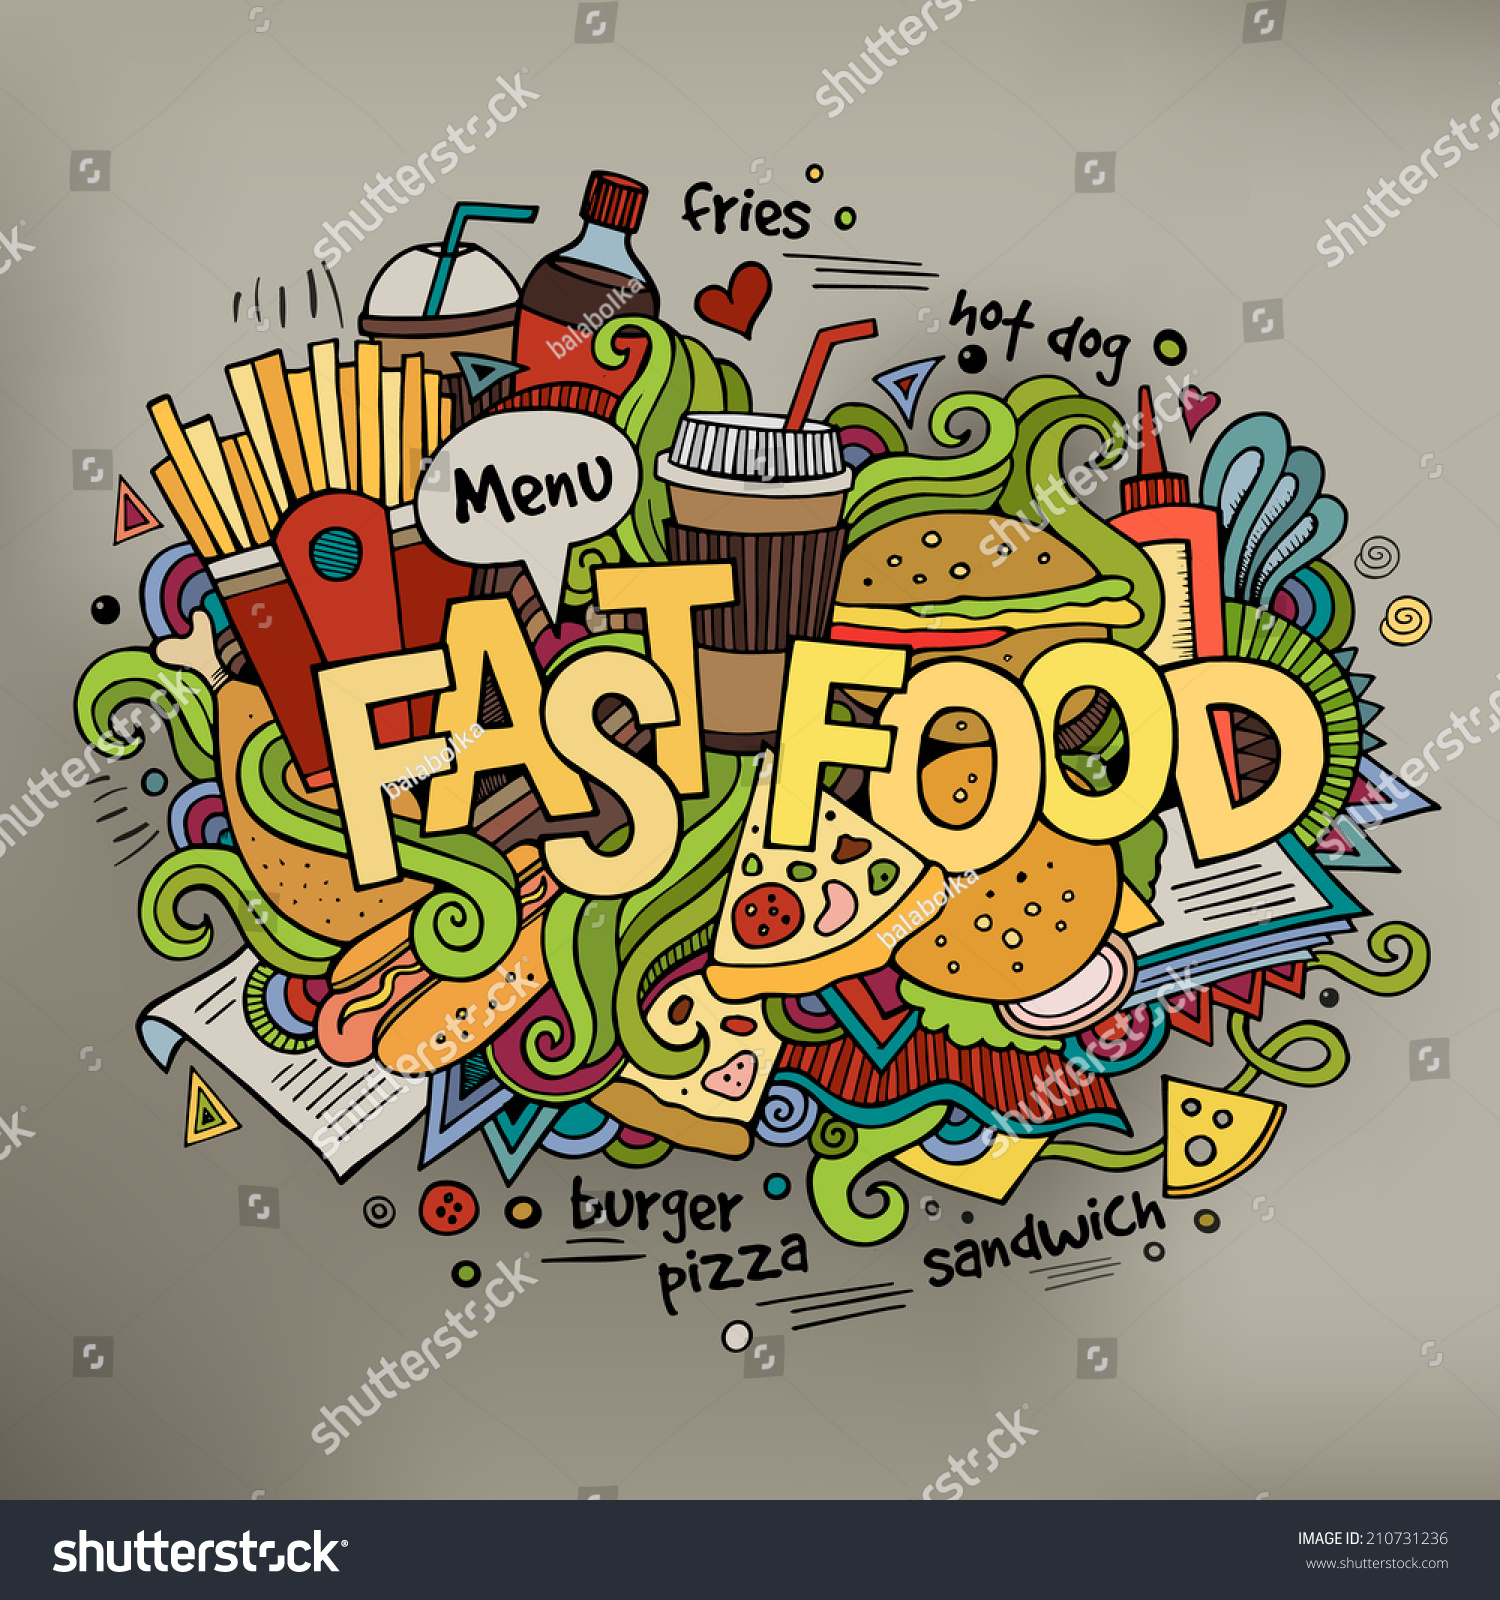 Stock vector music hand lettering and doodles elements - Fast Food Hand Lettering And Doodles Elements Background Vector Illustration